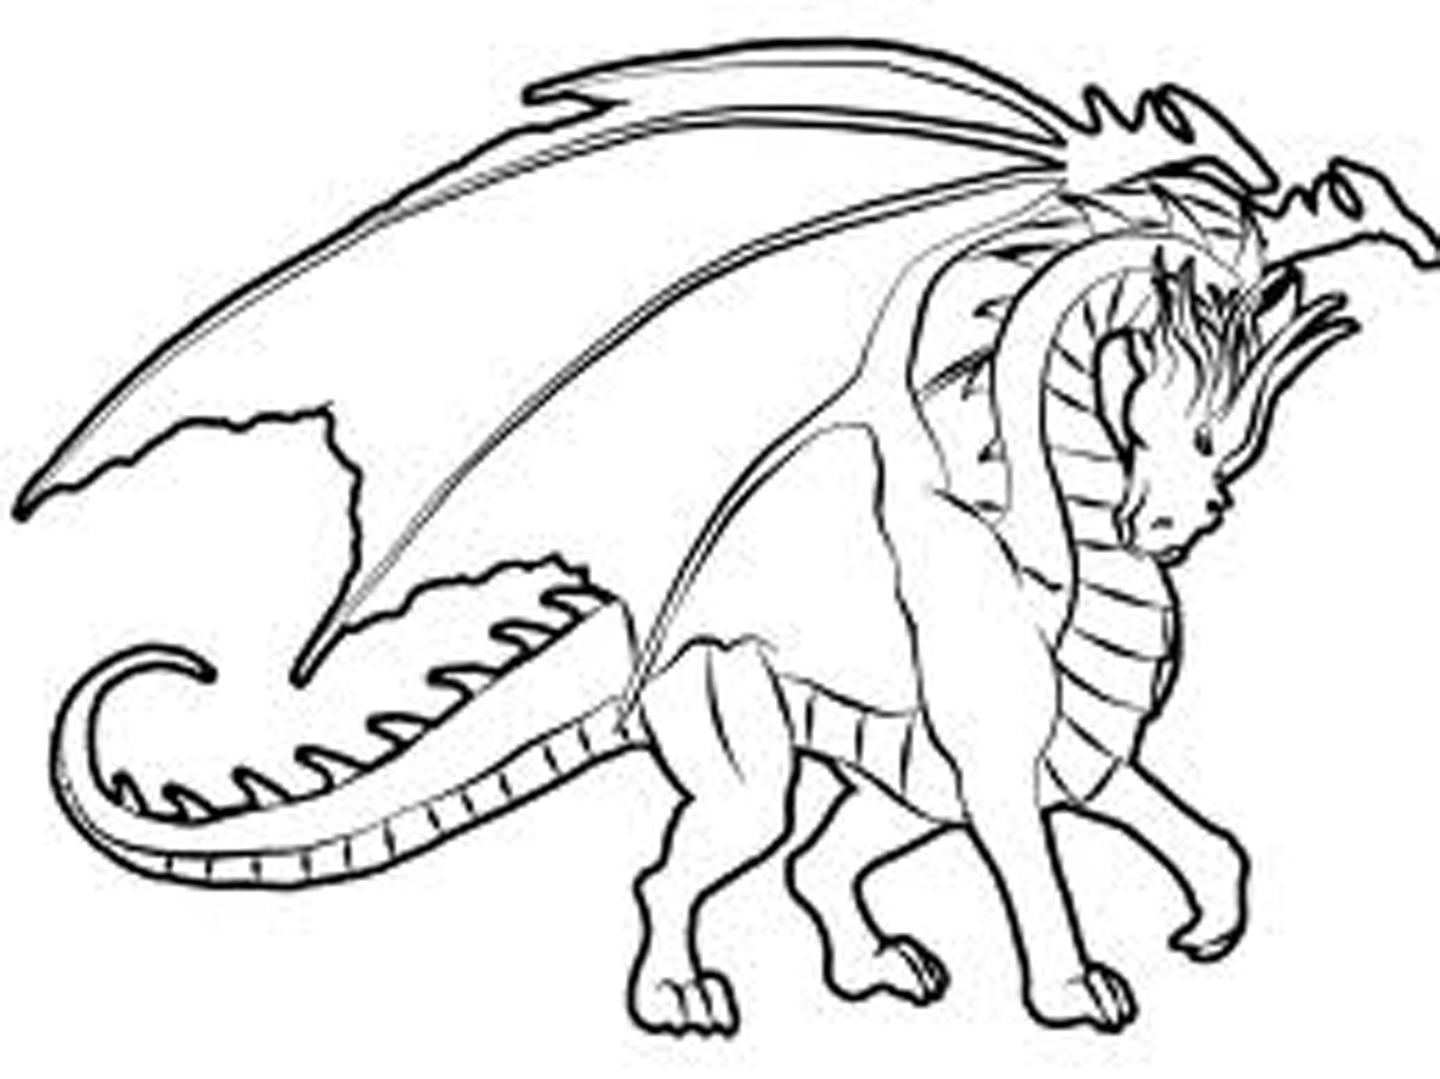 1440x1079 Charming Ideas Free Coloring Pages Good Kids For Your Download